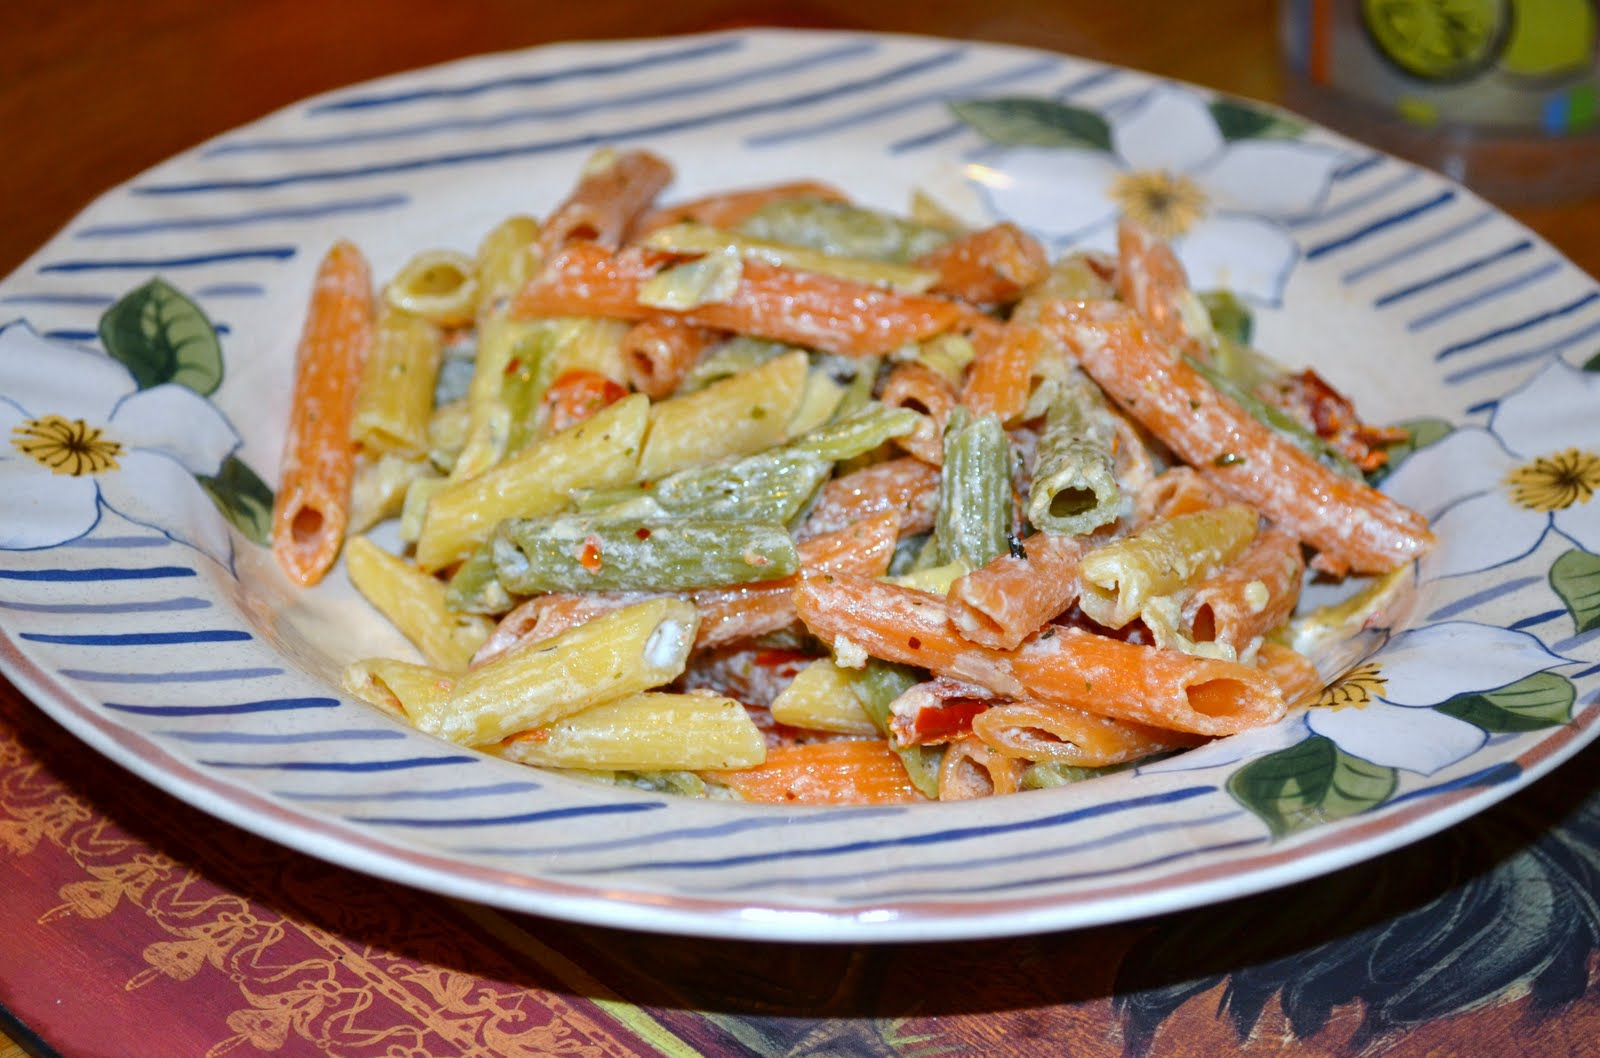 Penne With Sun Dried Tomatoes, Artichokes and Goat Cheese